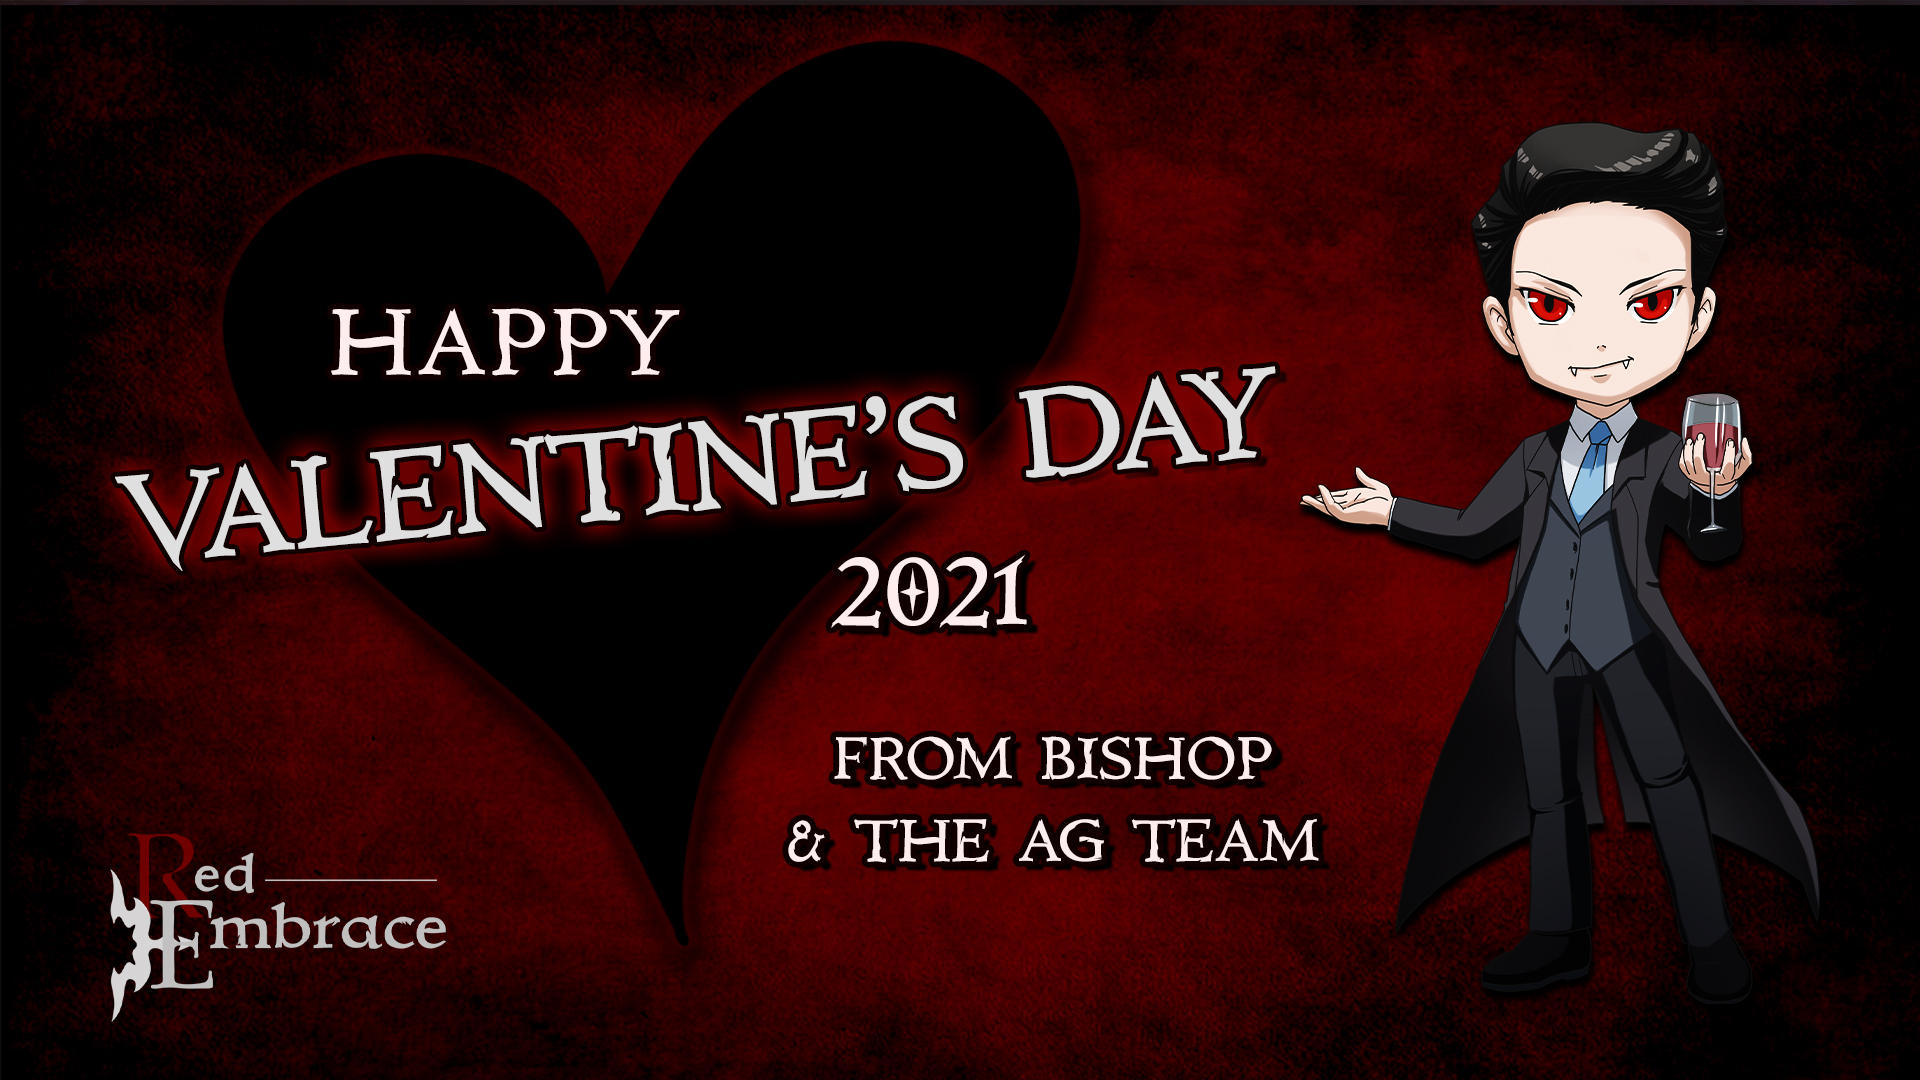 happy valentines day 2021 from bishop and argent games. chibi bishop at right holding up a glass of wine or blood